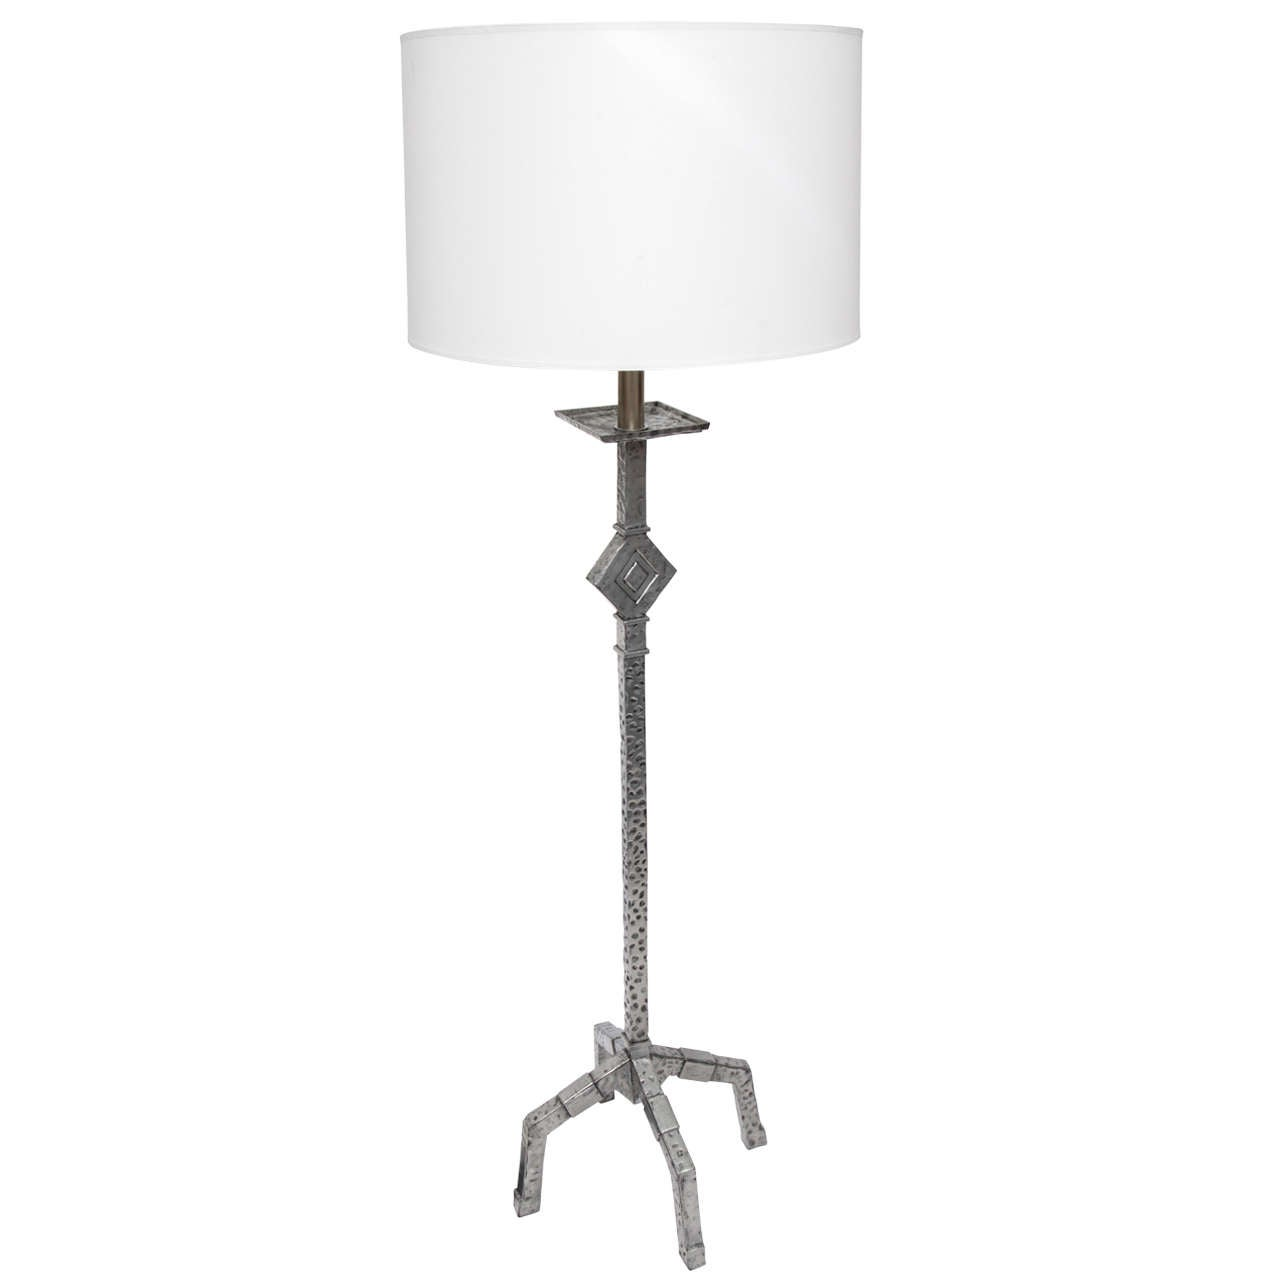 1930s modernist floor lamp for sale at 1stdibs for 1930s floor lamp